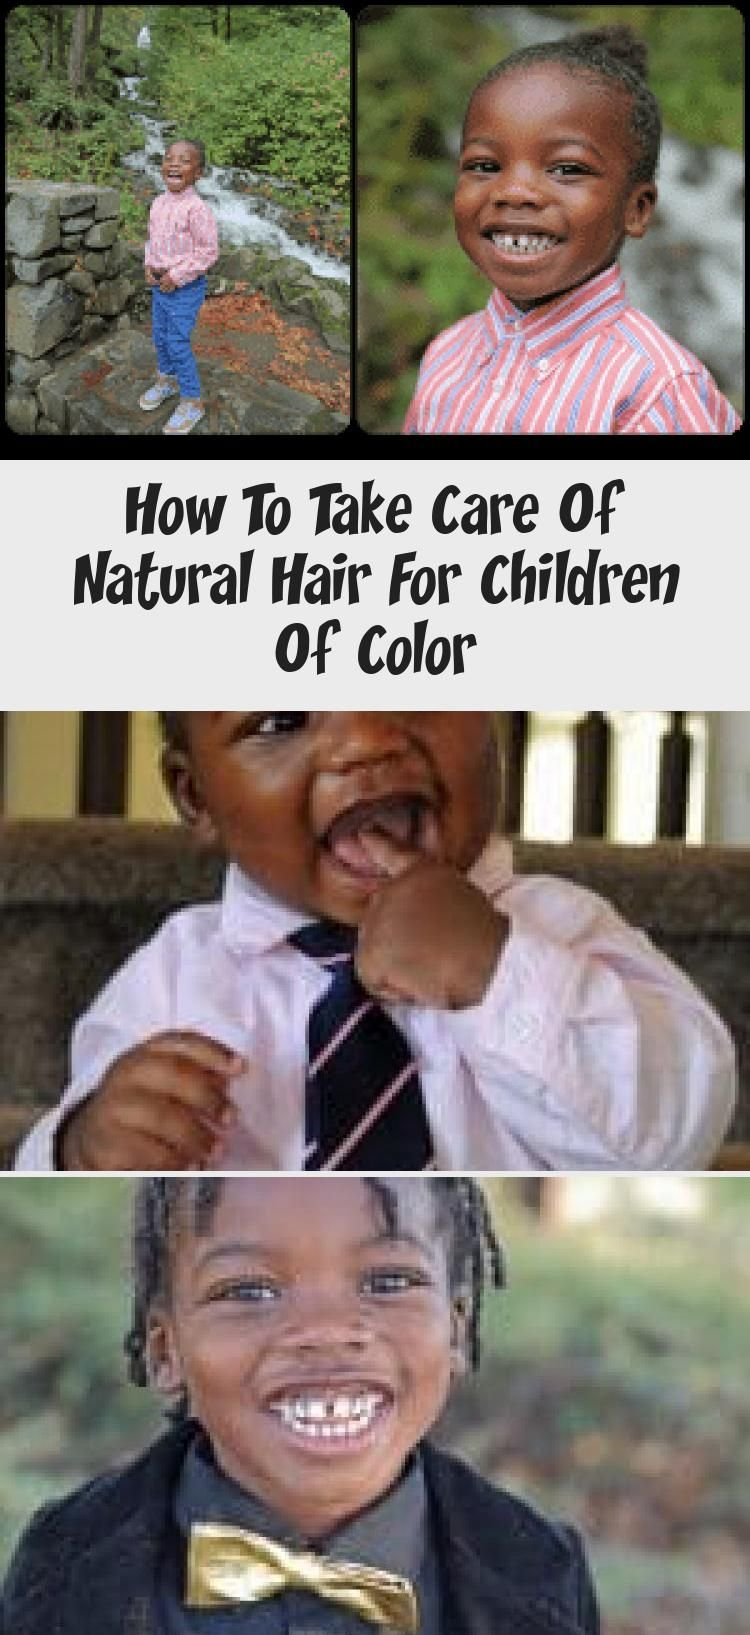 How To Take Care Of Natural Hair For Children Of Color - Pinokyo -  How To Take Care Of Natural Hair For Children Of Color | The MOM Trotter #haircareCoconutOil #Blackhaircare #Winterhaircare #Grayhaircare   - #africanamericanHairCare #bestHairCare #blondeHairCare #coloredHairCare #curlyHairCare #HairCare #HairCaredamaged #HairCaredandruff #HairCarediy #HairCaredry #HairCareforsplitends #HairCarefrizzy #HairCaregrowth #HairCareproducts #HairCareroutine #HairCaretips #HairCaretreatments #healthy